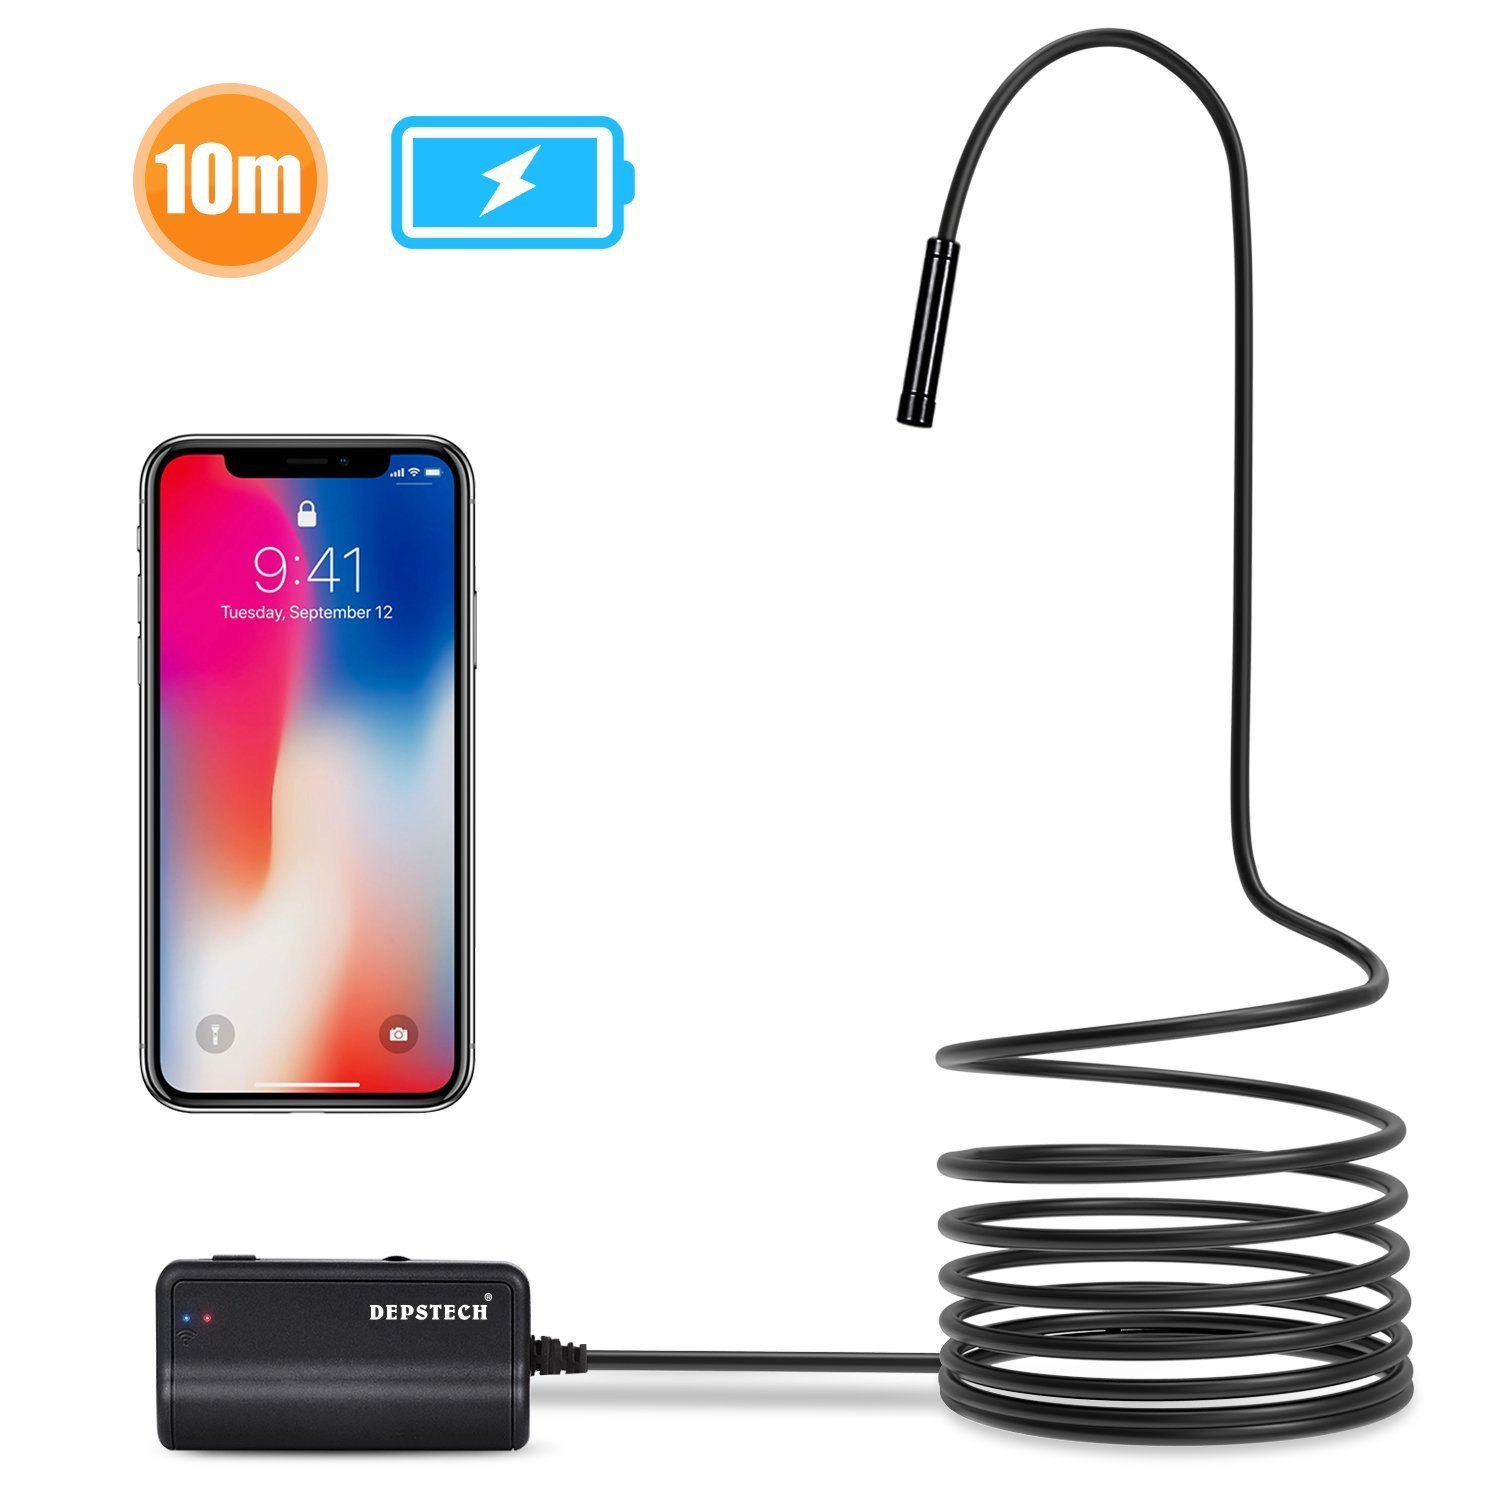 Depstech 1200P Semi-rigid Wireless Endoscope, 2.0 MP HD WiFi Borescope Inspection Camera,16 inch Focal Distance & 1800mAh Battery Snake Camera for Android & IOS Smartphone Tablet - Black 33FT